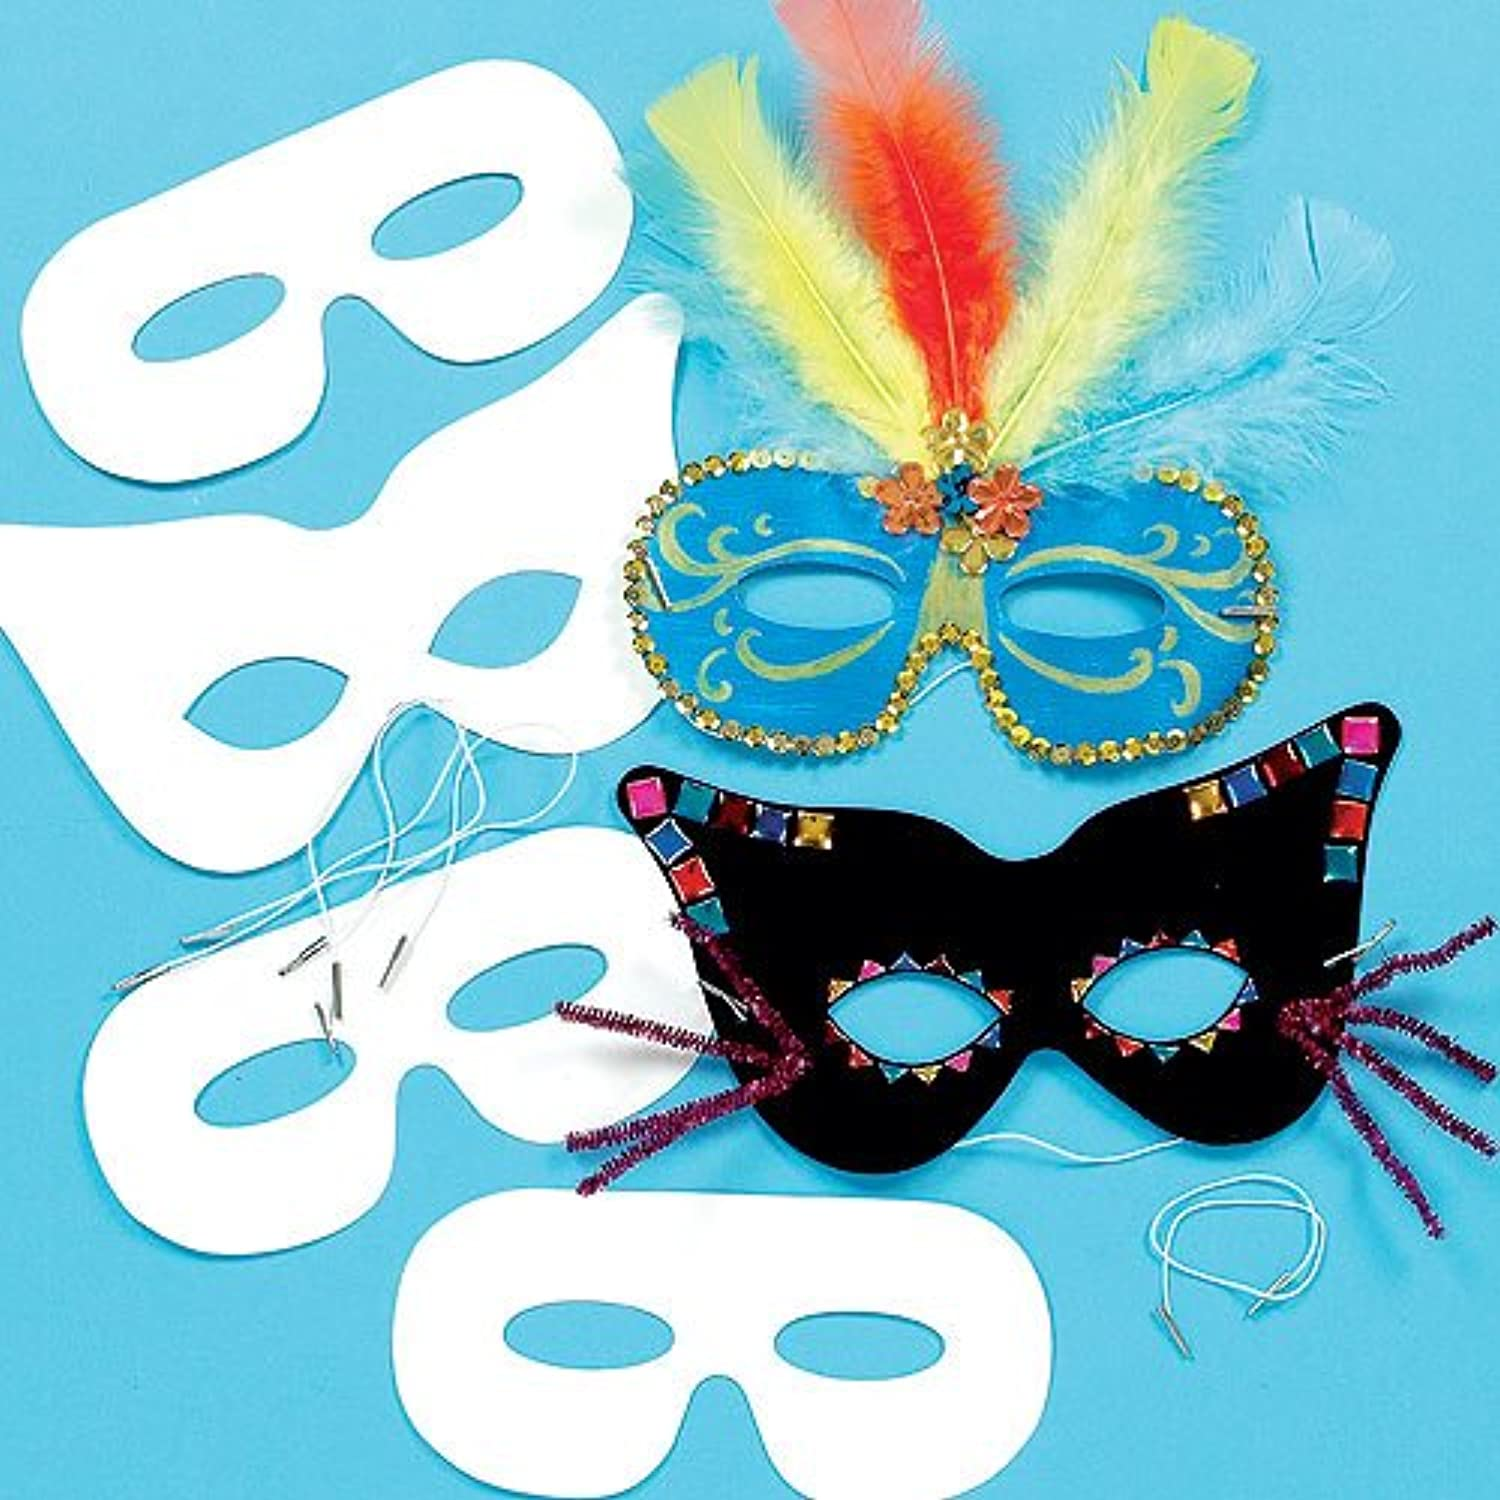 Baker Ross Decorate your Own Eye Masks (Bulk Pack Of 36) Buy offers For Kids To Decorate And Fancy Dress